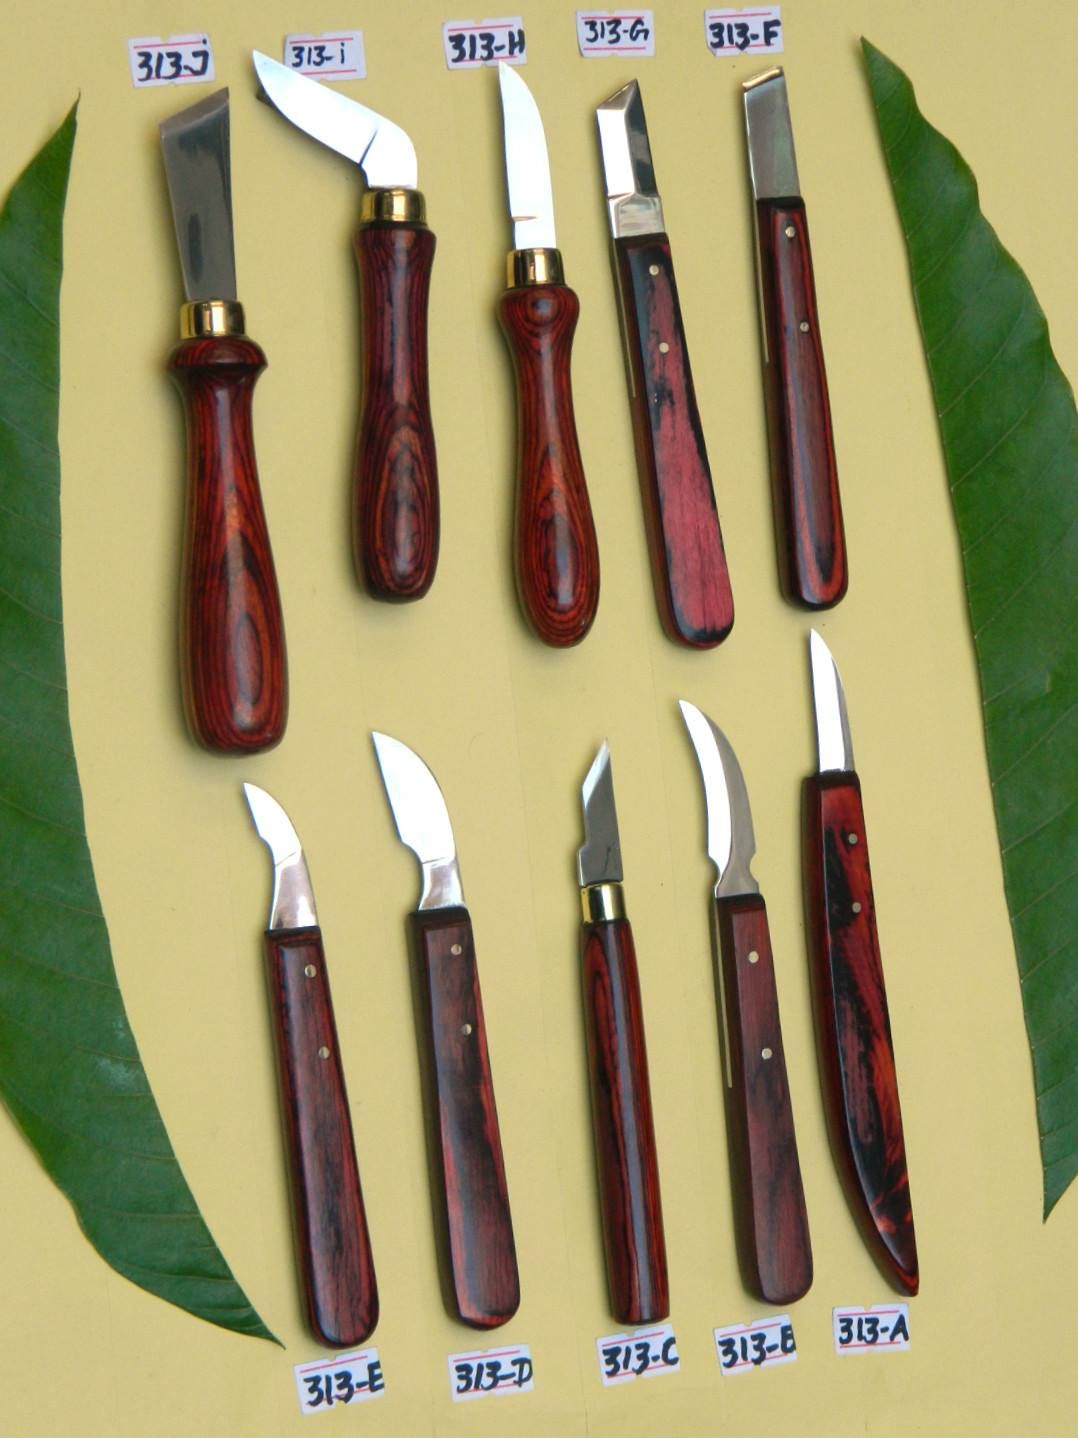 Art.#.99006/A-J 10-pcs set wood/chip carving knives 1095 Hi-Carbon